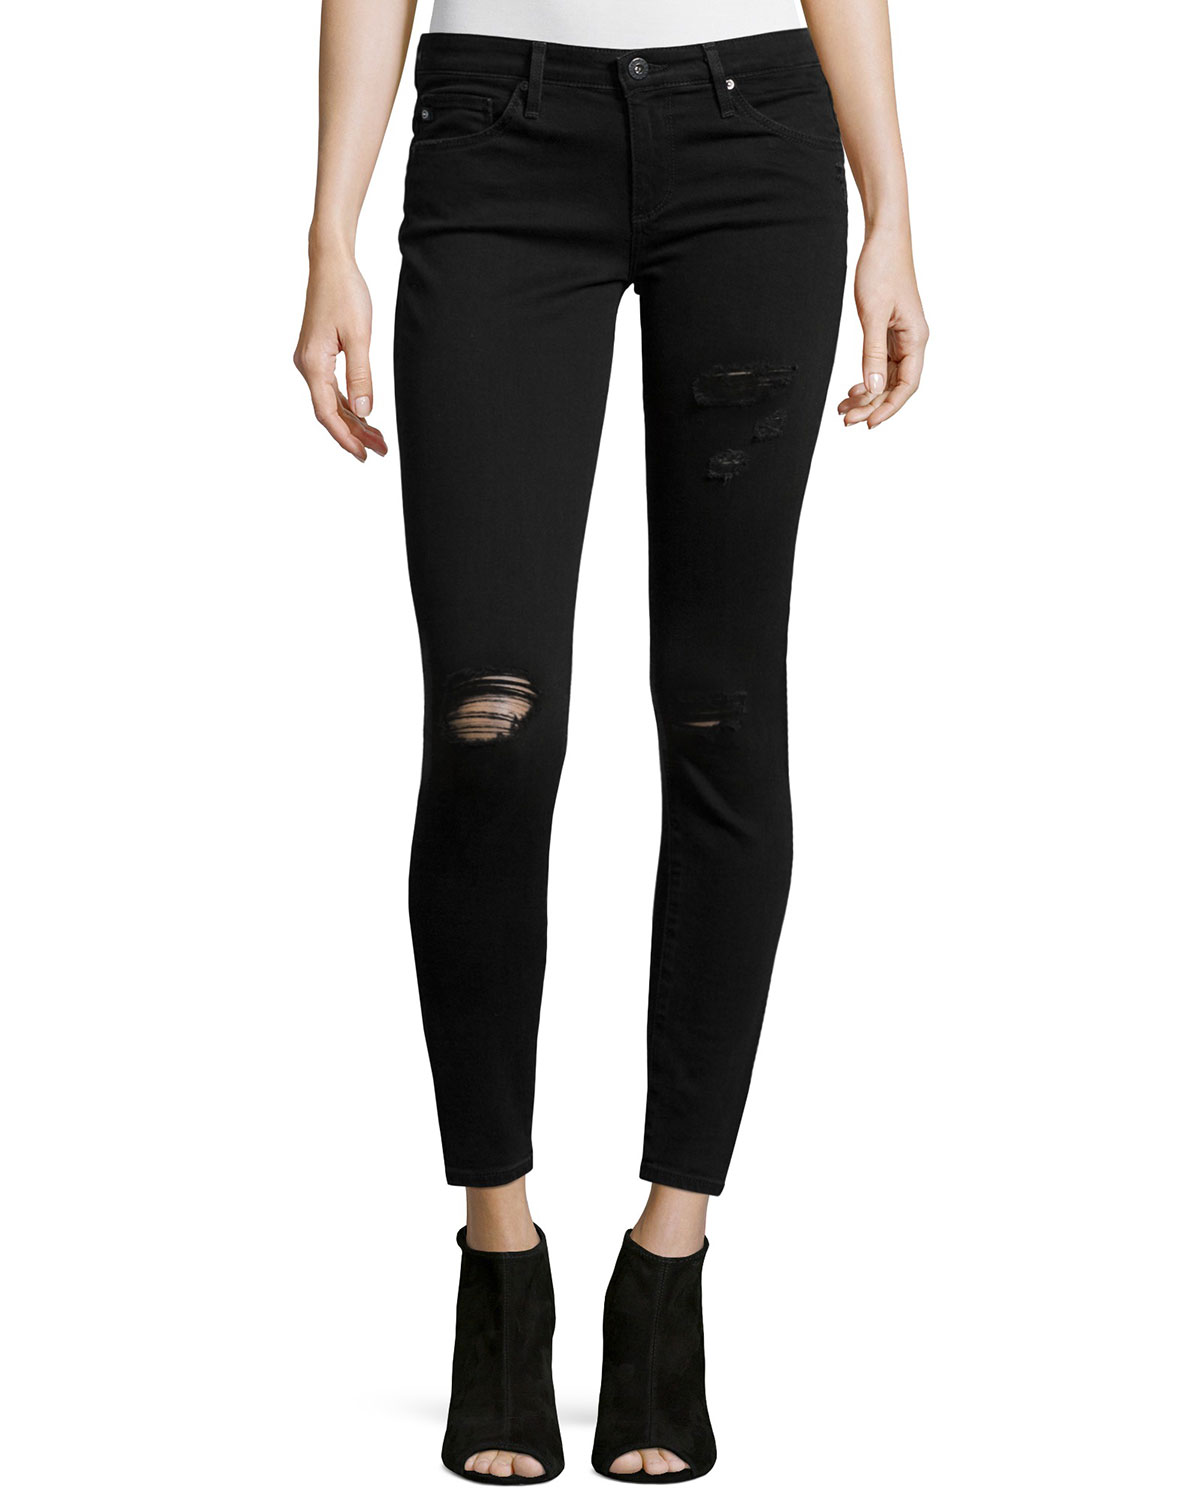 The Legging Ankle Jeans, Parisienne, Size: 24 - AG